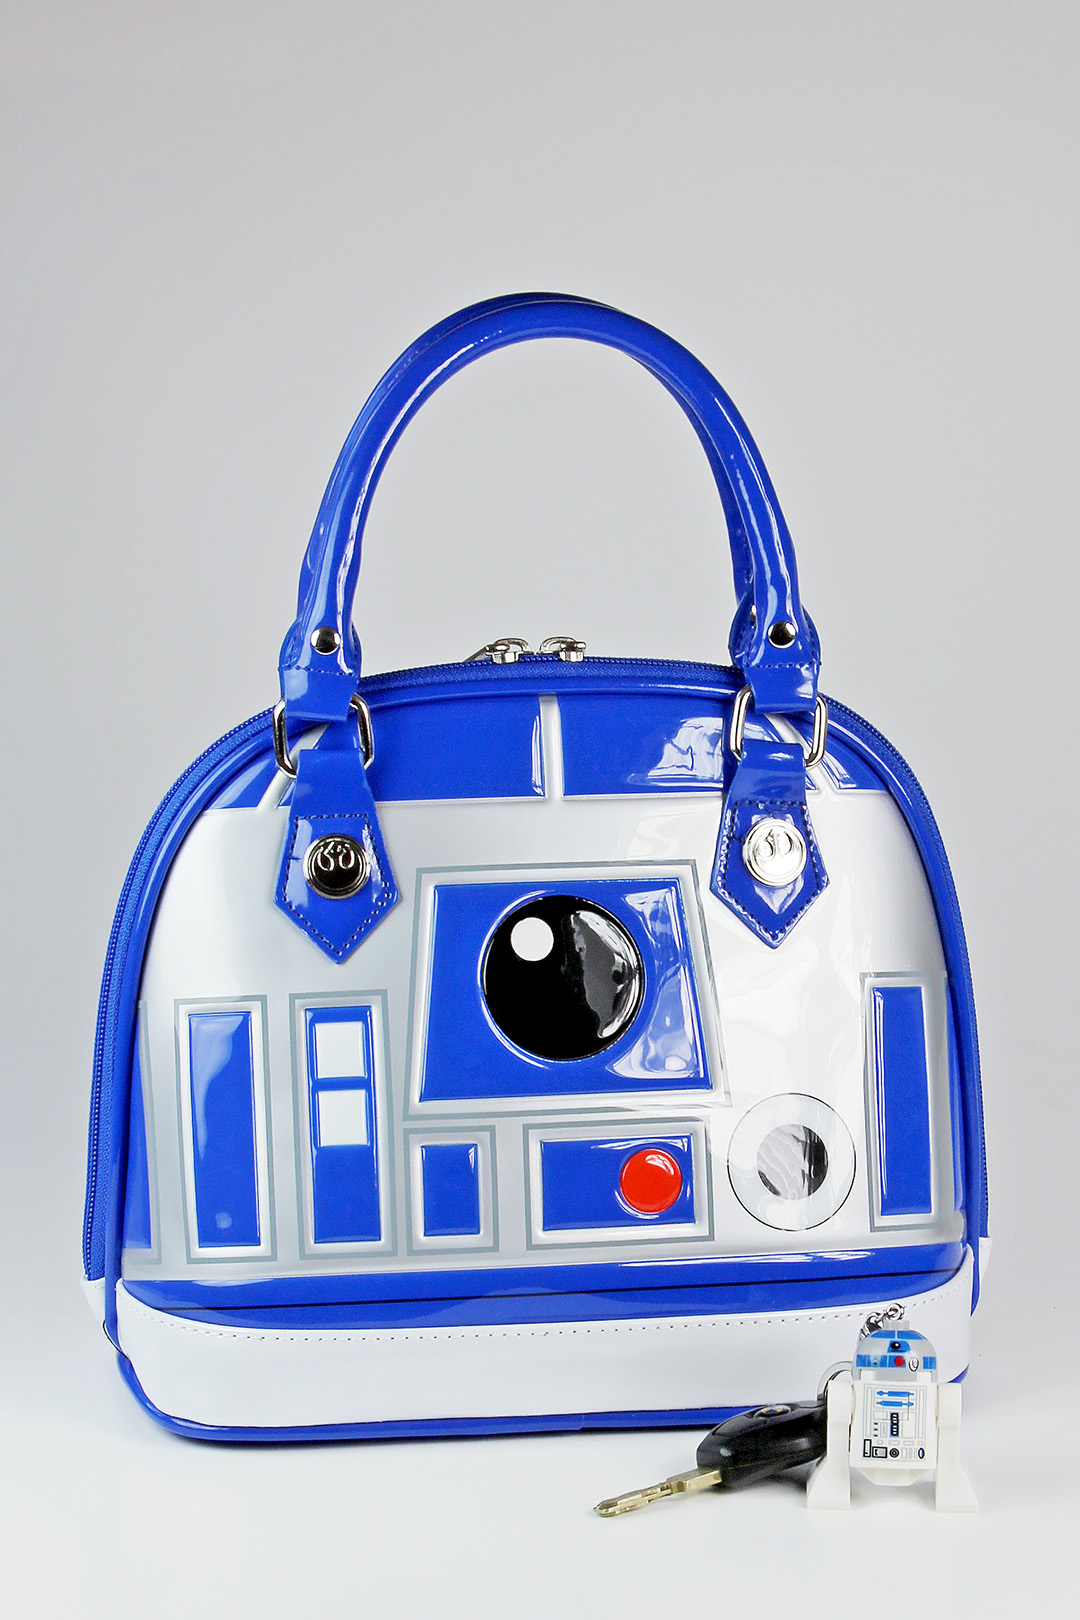 Loungefly - R2-D2 handbag (front, with Lego keychain)